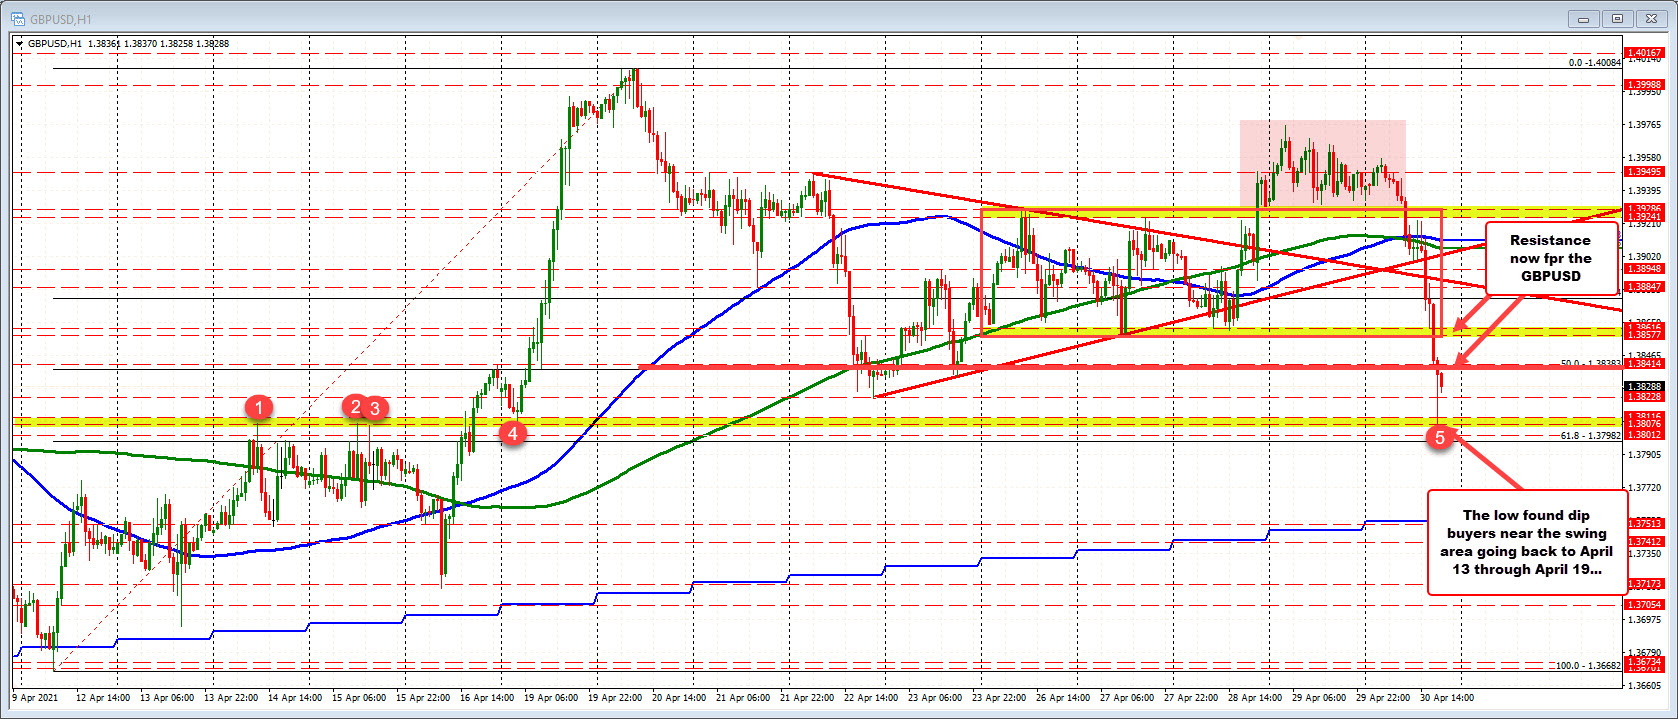 GBPUSD moves to lowest level since April 16. Bounces off a lower swing area.